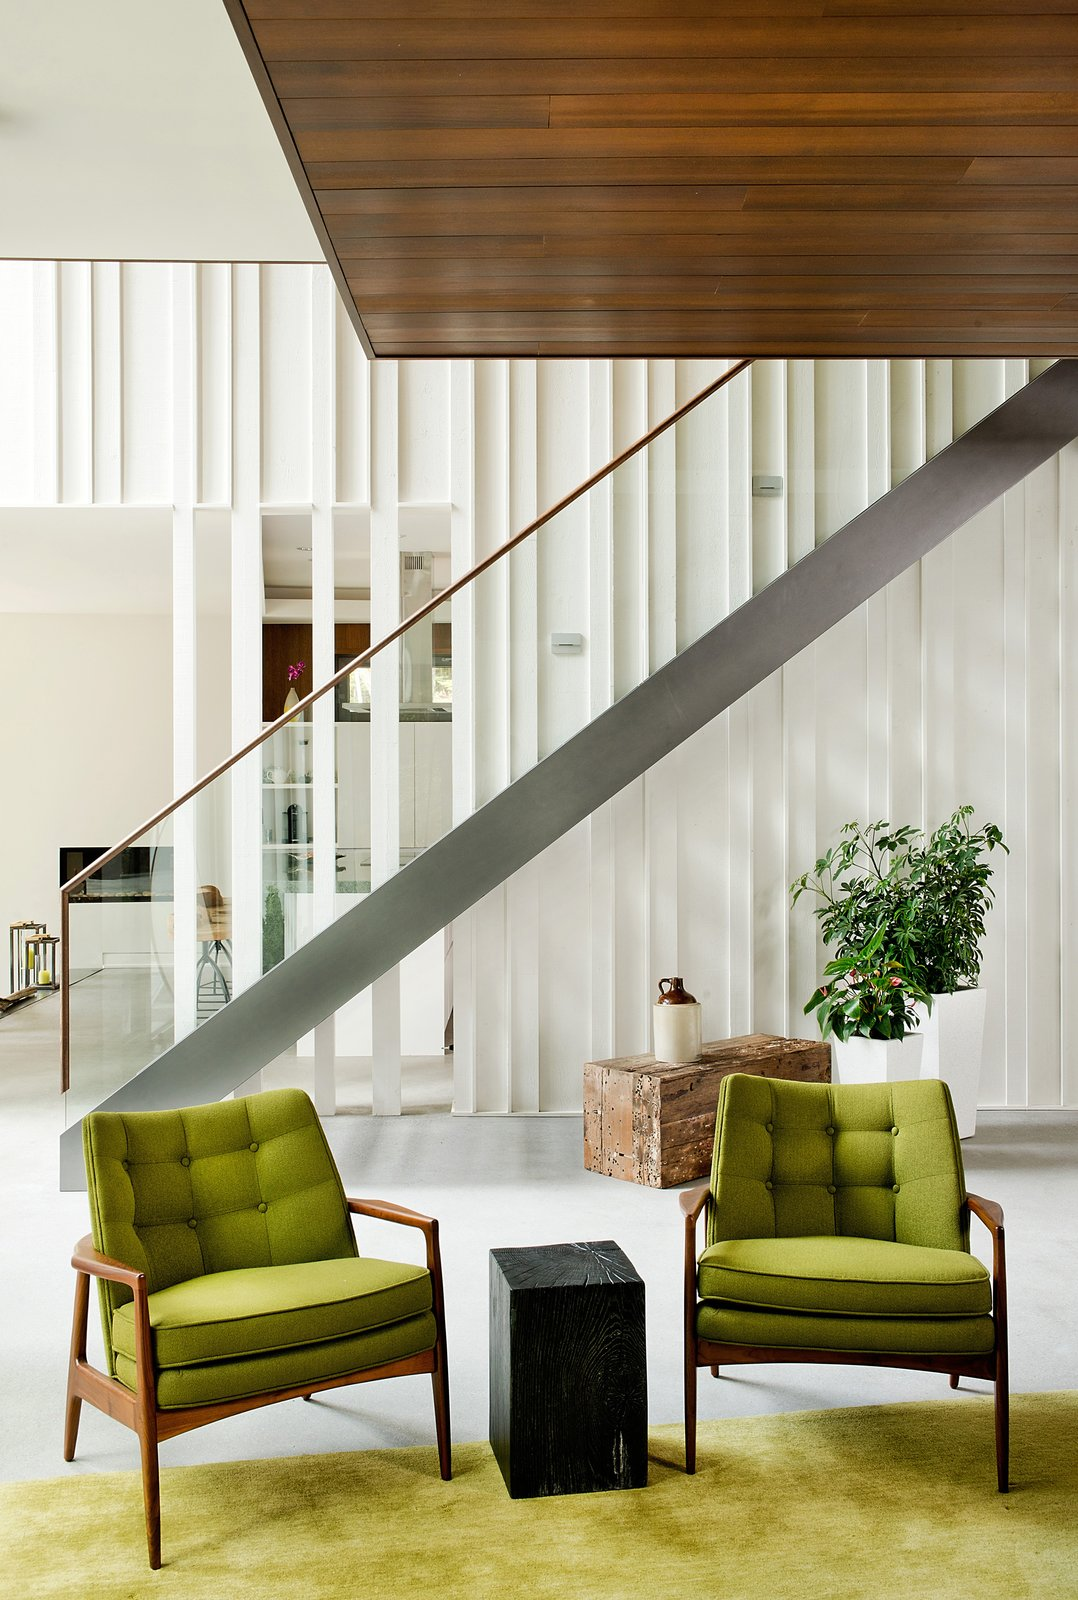 Raw wood planks were painted white and fitted next to a staircase and banister by Bättig Design. Matching chairs by Thayer Coggin sit atop a Crate and Barrel rug.